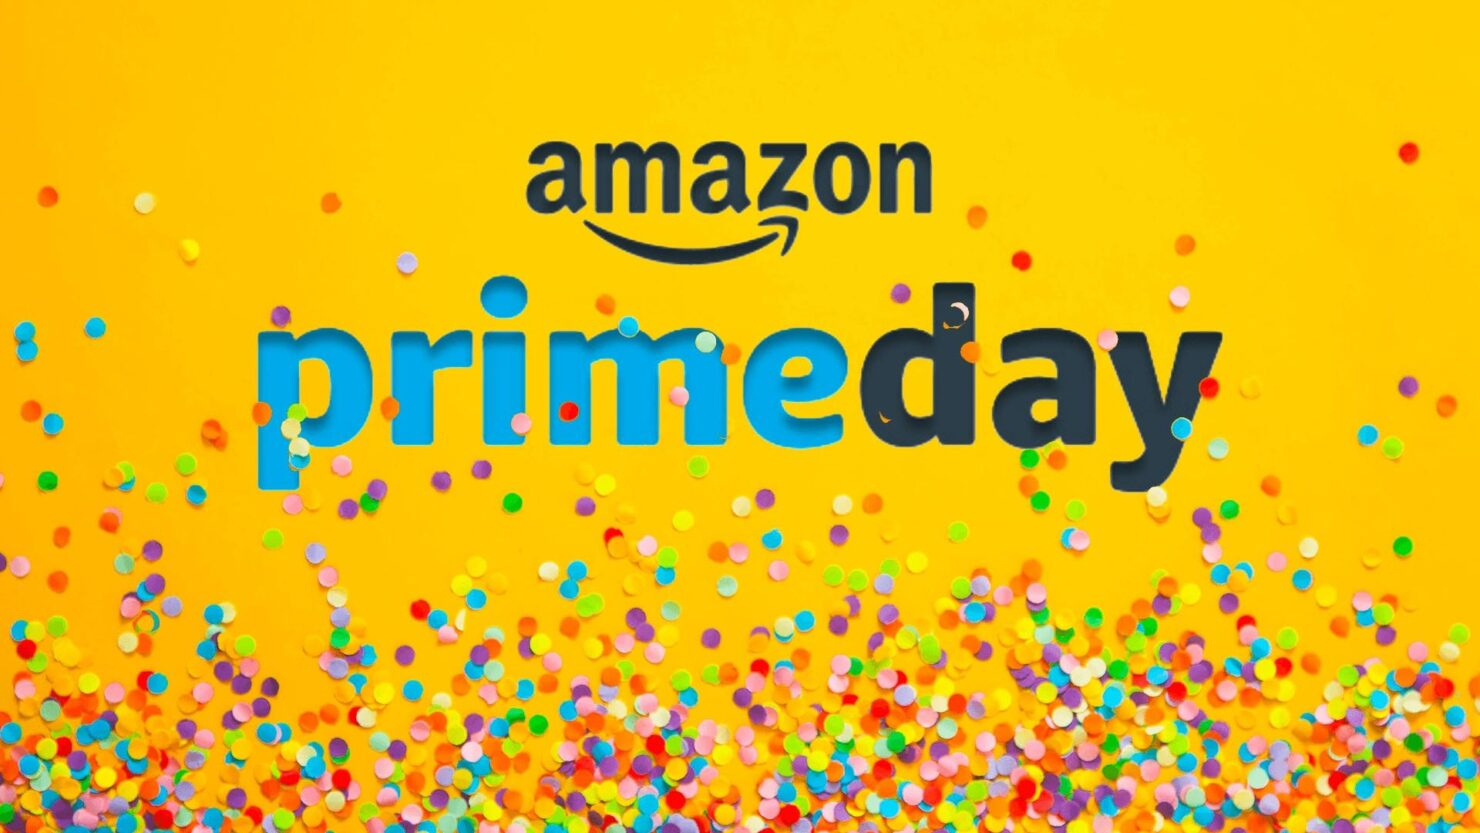 Amazon Prime Day 2021 - All Your Favorite Deals in One Place